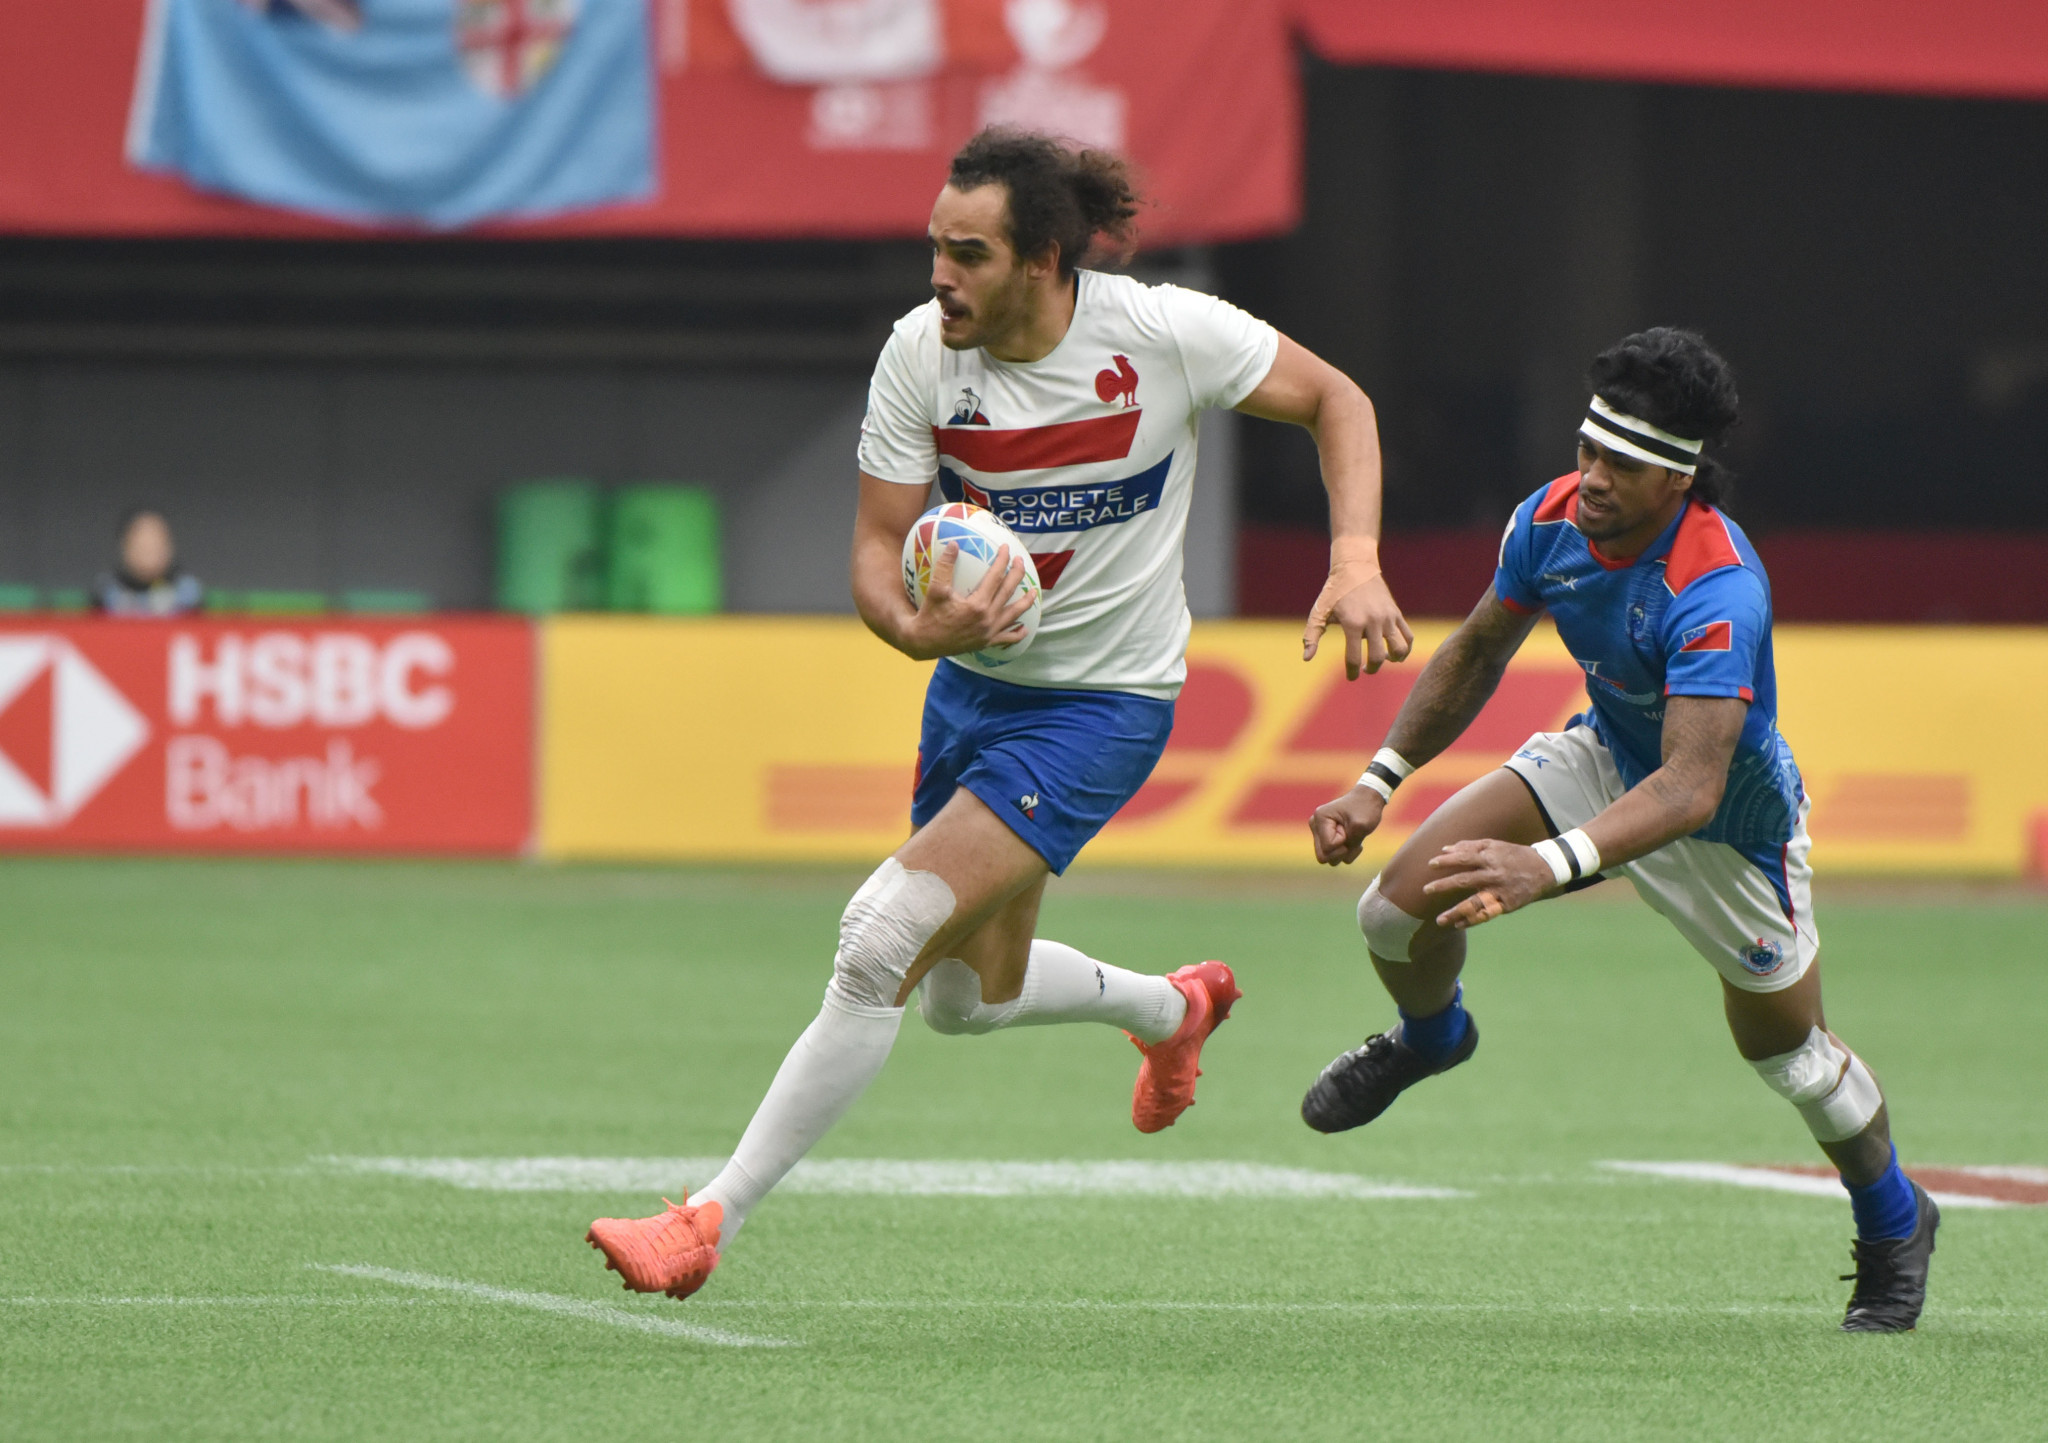 Monaco to host final Olympic sevens qualifier as World Rugby agrees $4 million investment